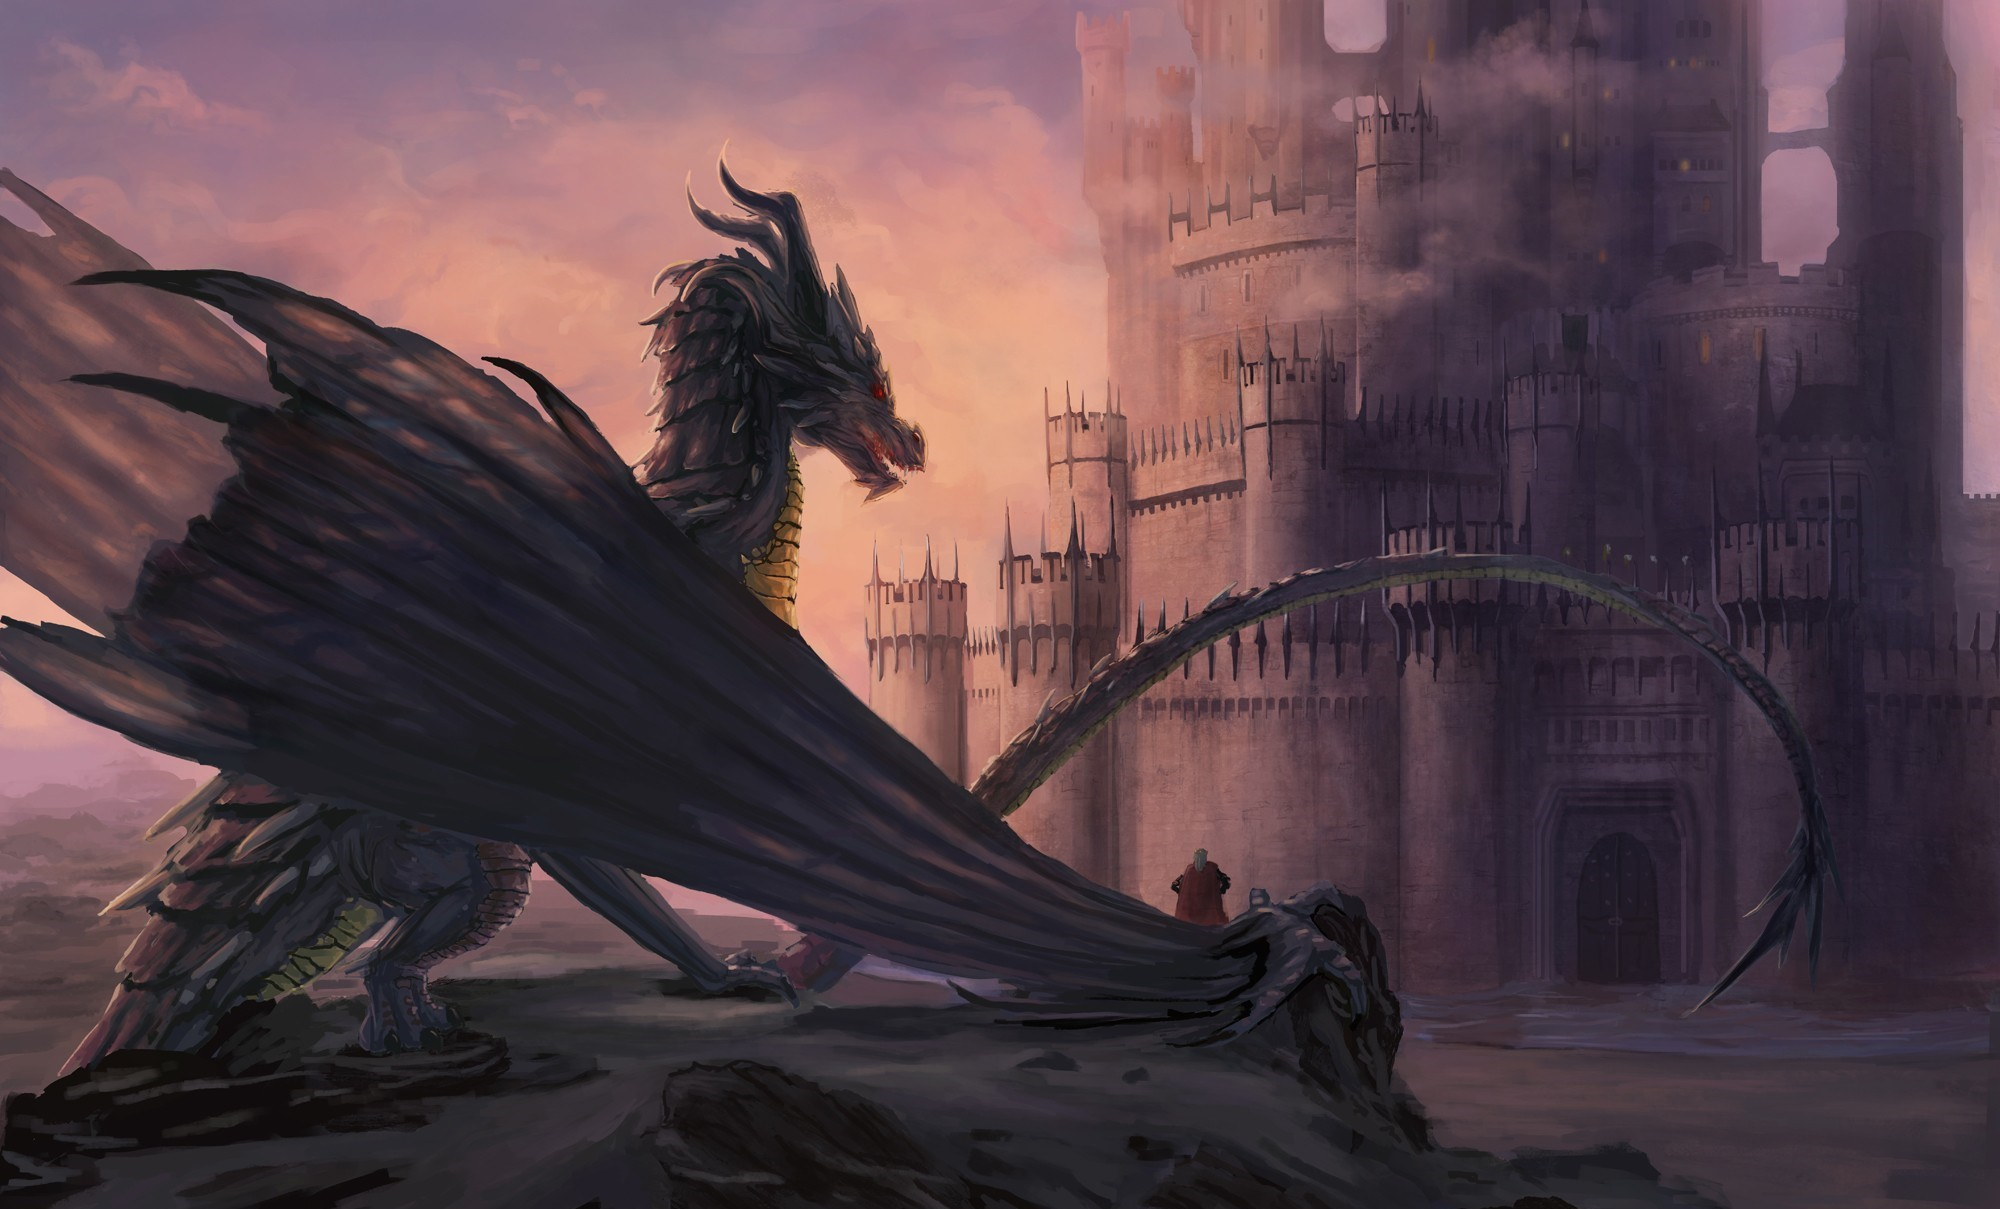 Dragon Castle Fantasy Art Artwork Wallpapers Hd